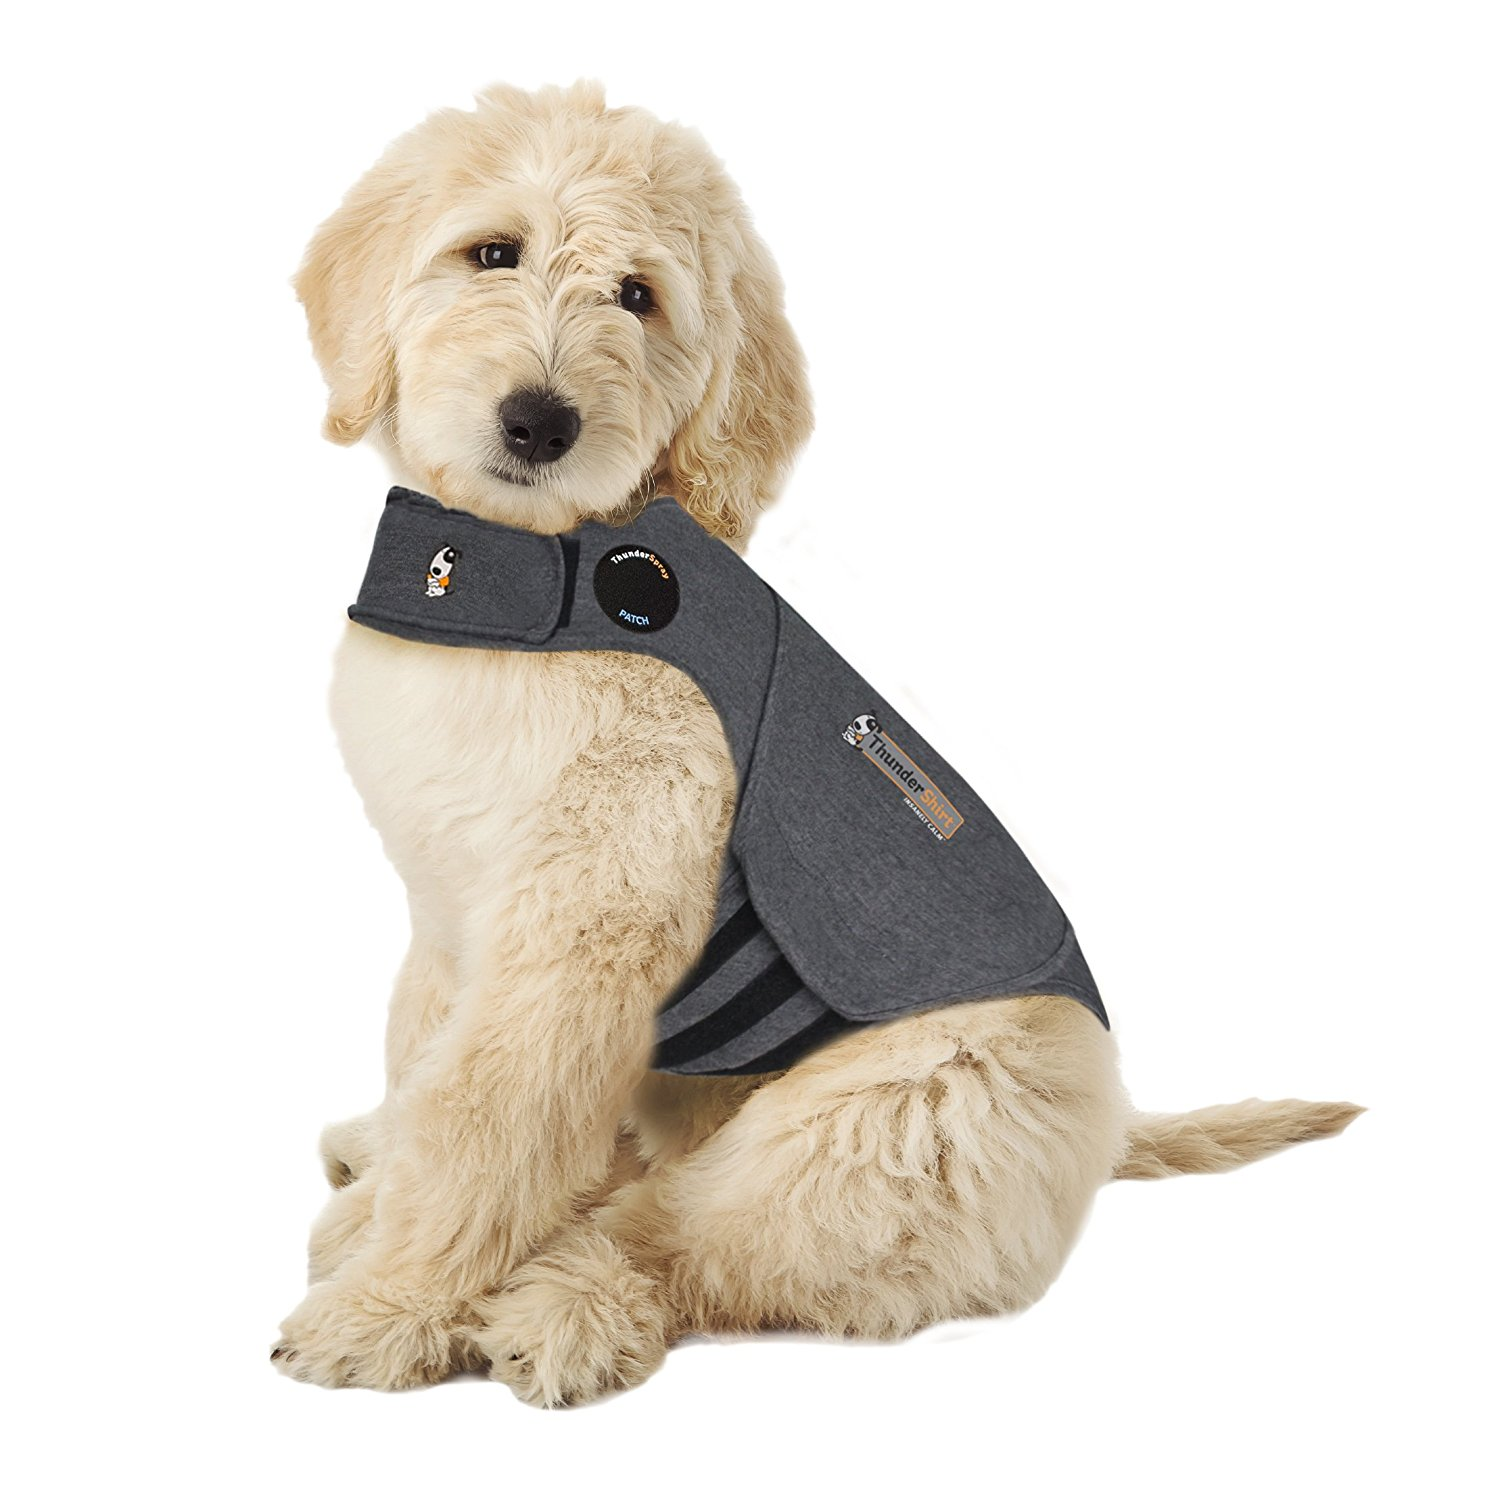 Thunder Jacket for Dogs  Keep Your Pet Calm During Stressful     Thunder Jacket for Dogs  Keep Your Pet Calm During Stressful Situations